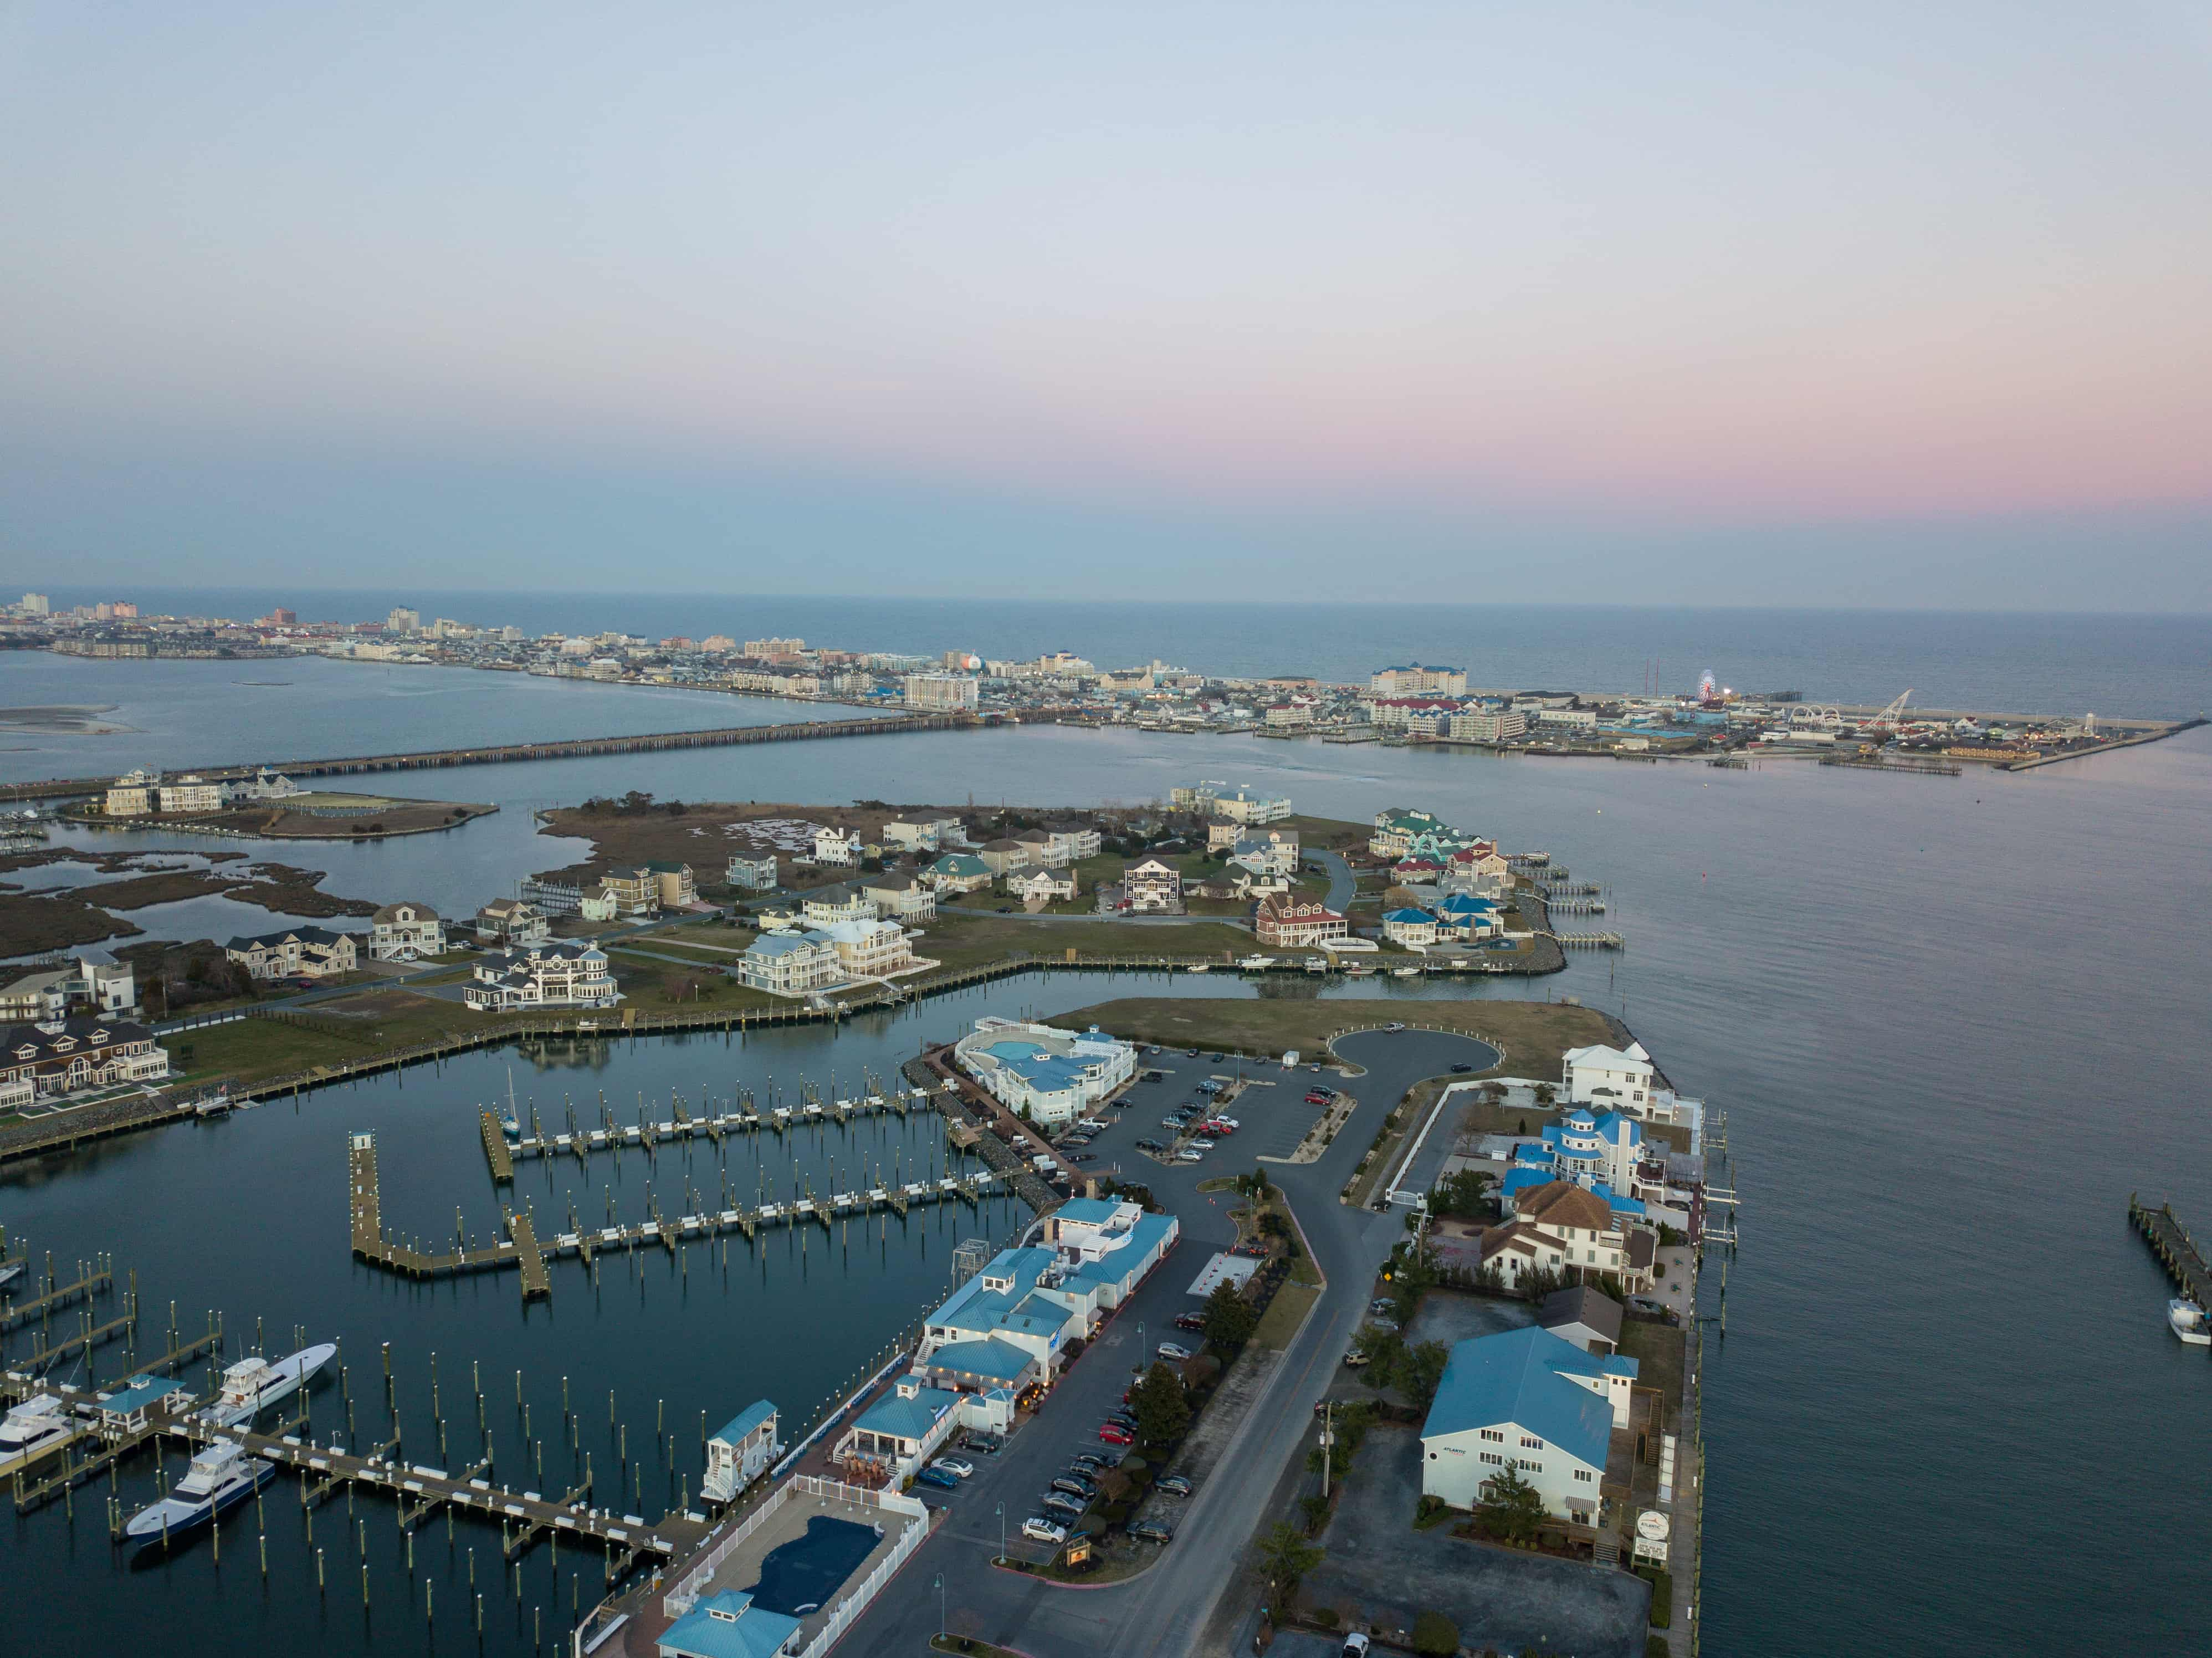 Aerial view of Ocean City's White Marlin harbor